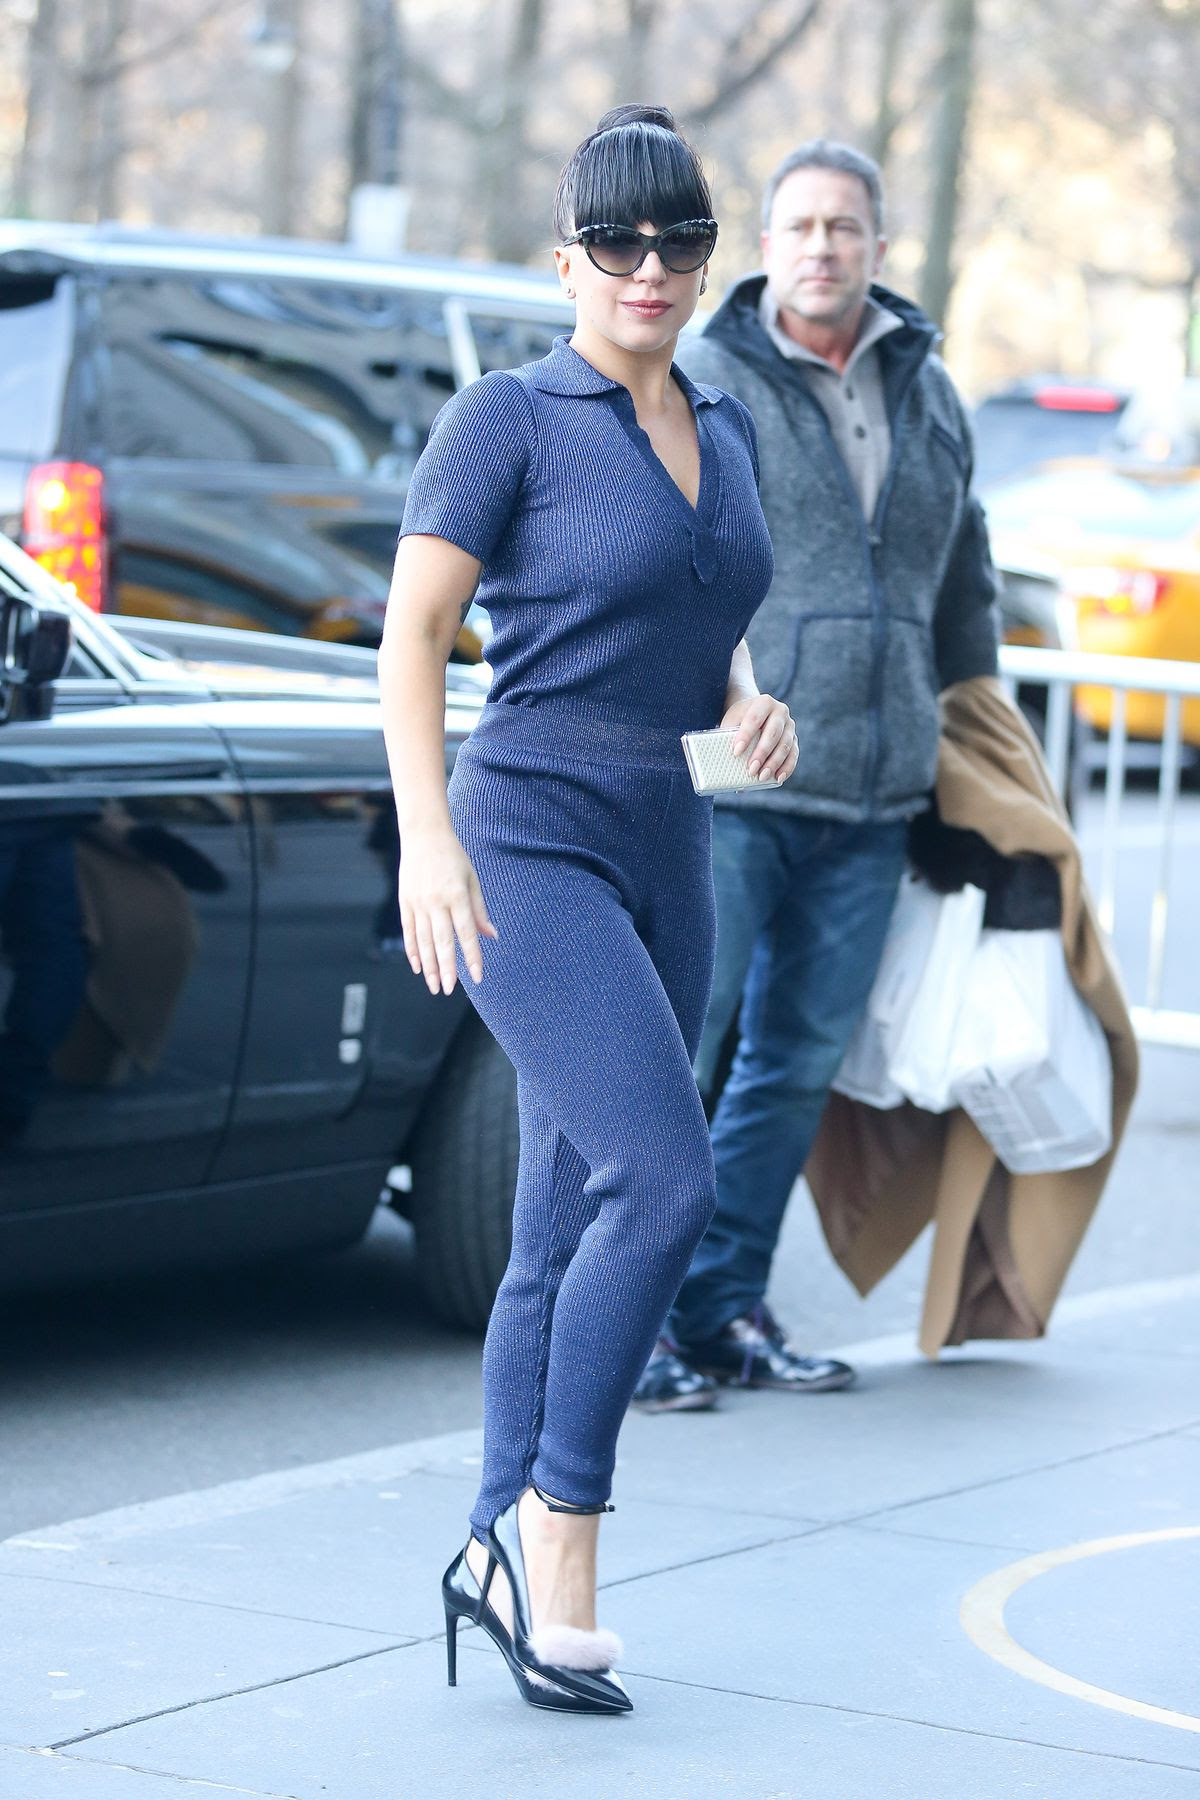 Lady Gaga wears a blue outfit and a furry pumps while arriving at her apartment in New York City